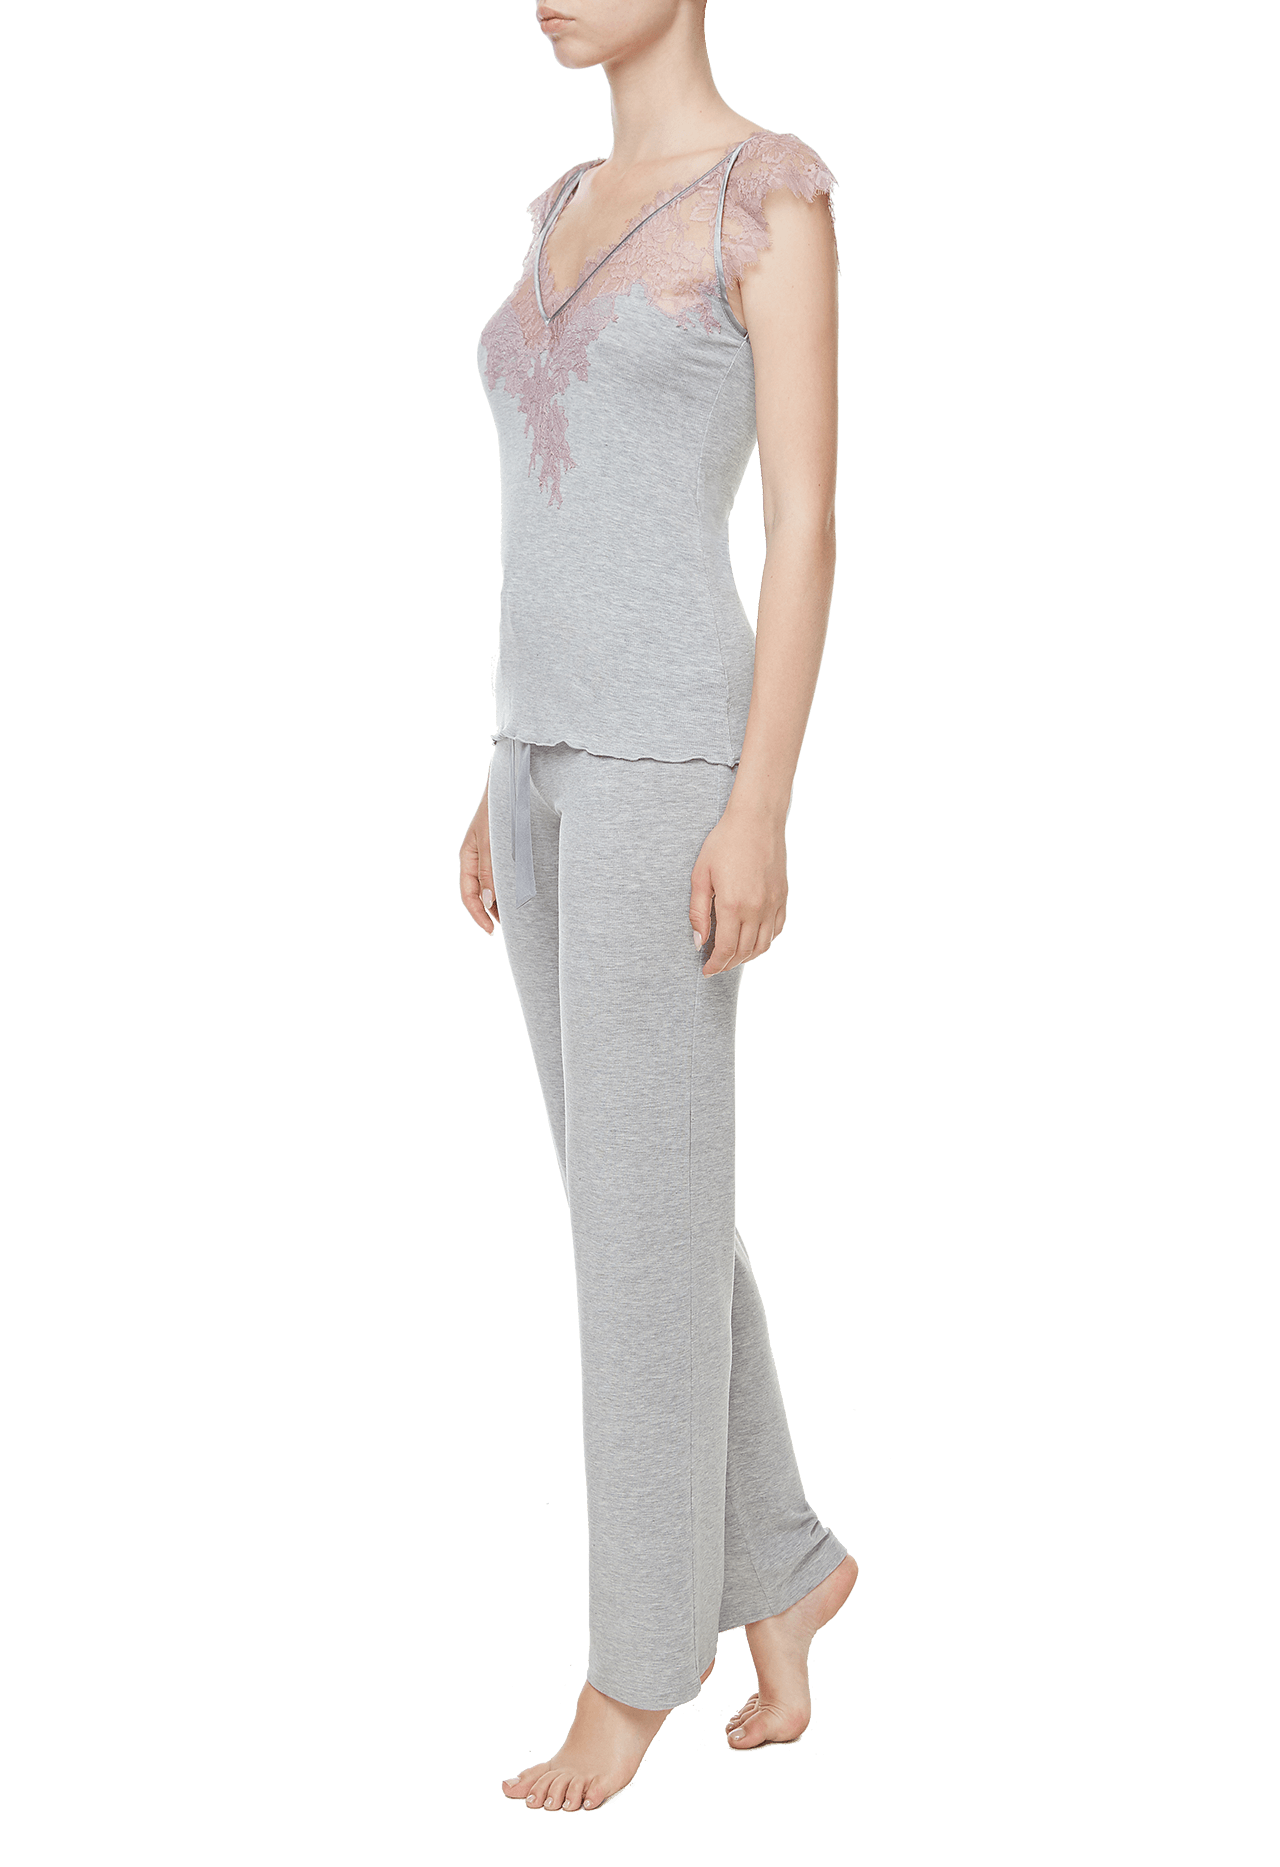 Пижама (топ, брюки) Suavite pajamas-long-set-slp41-19-g-deniz-w